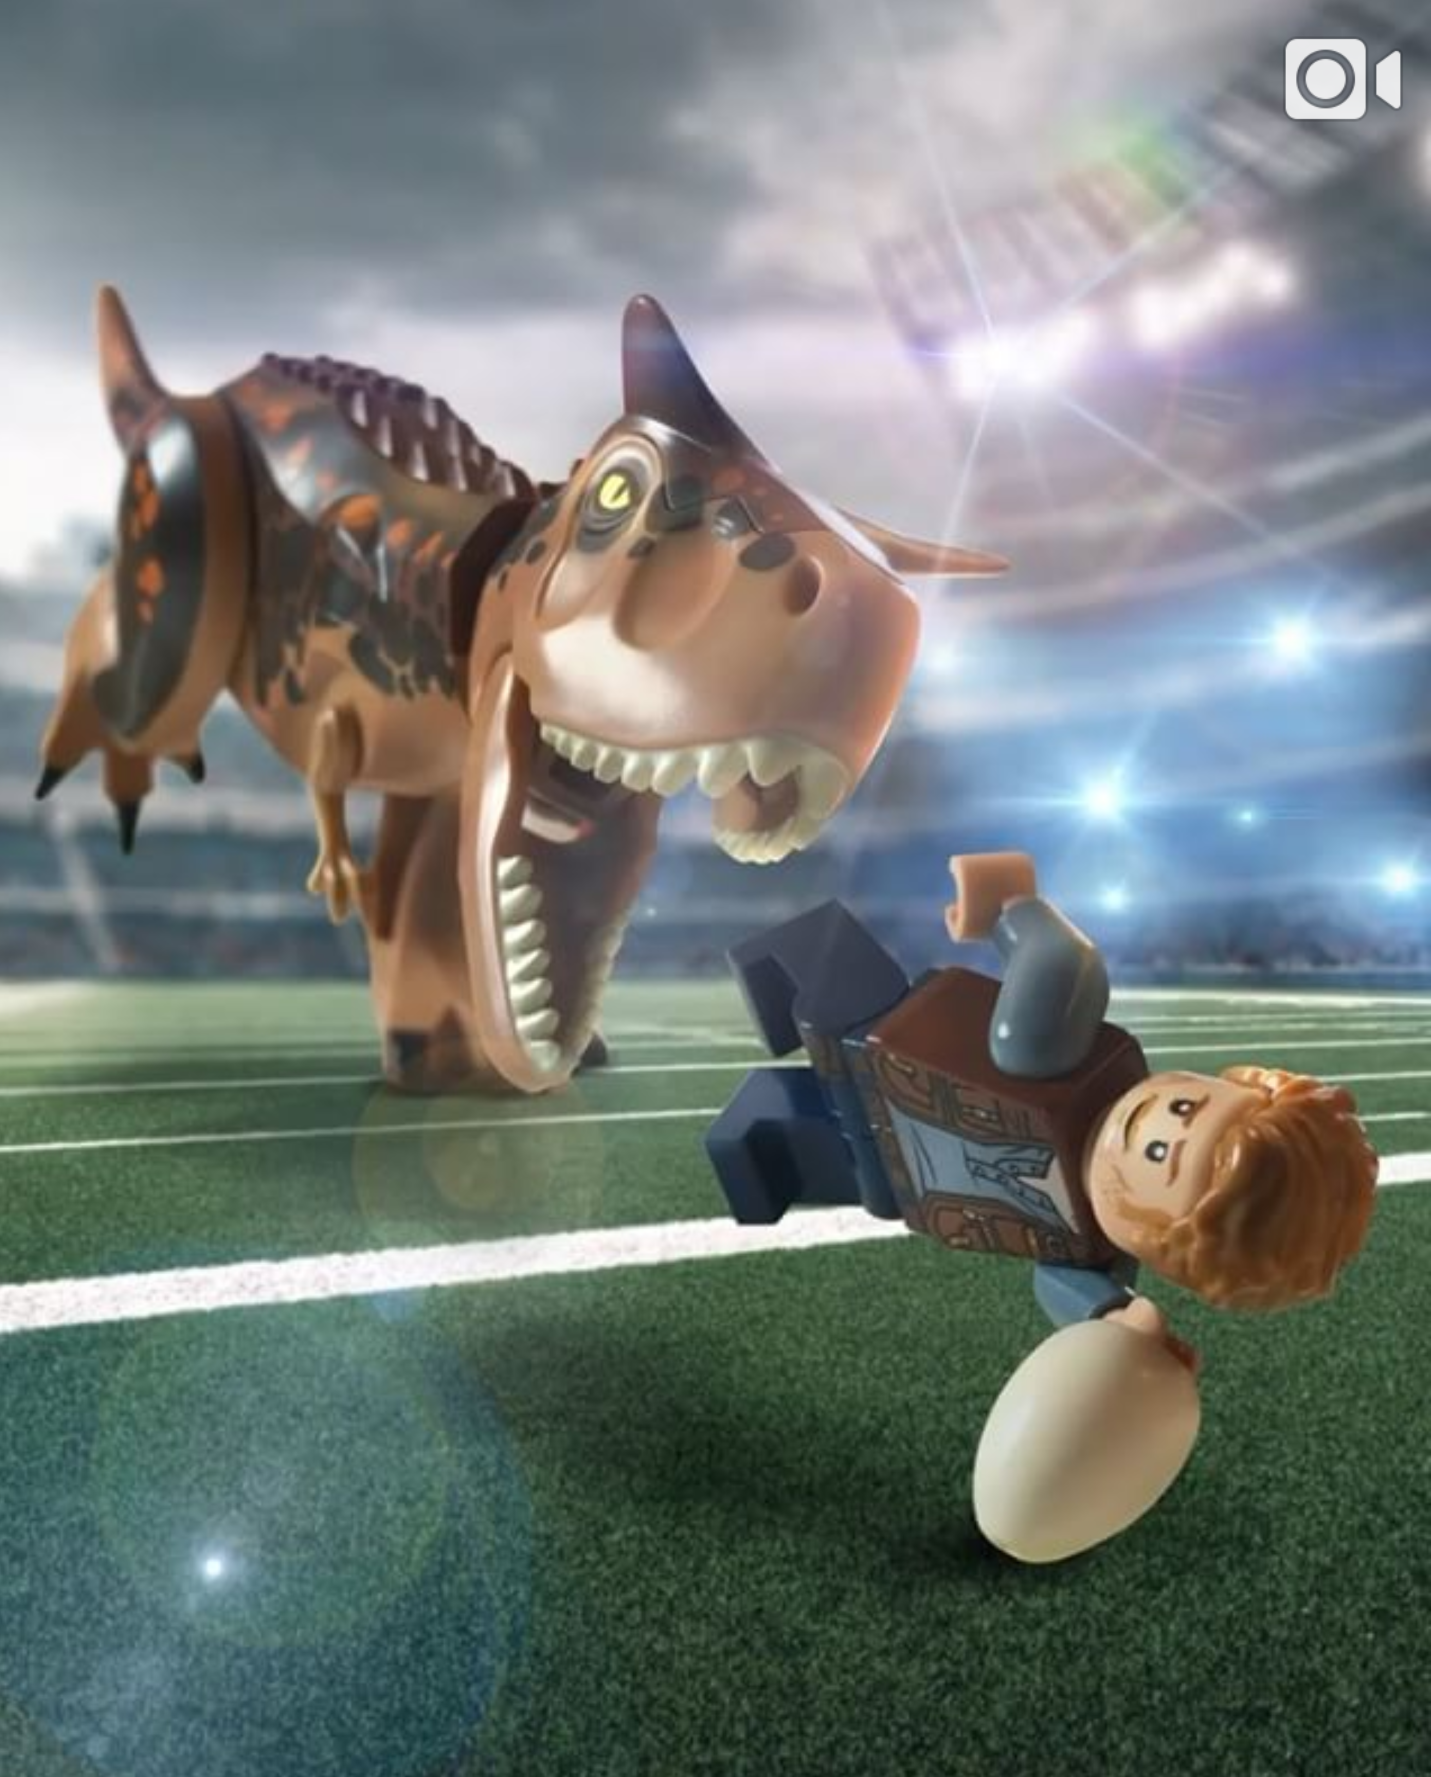 big helicopter toys with Preview Lego Jurassic World 2018 Fallen Kingdom Sets on 32807289583 in addition Classic Building Toys We Love further War Helicopters Toys furthermore Watch further 32617511757.